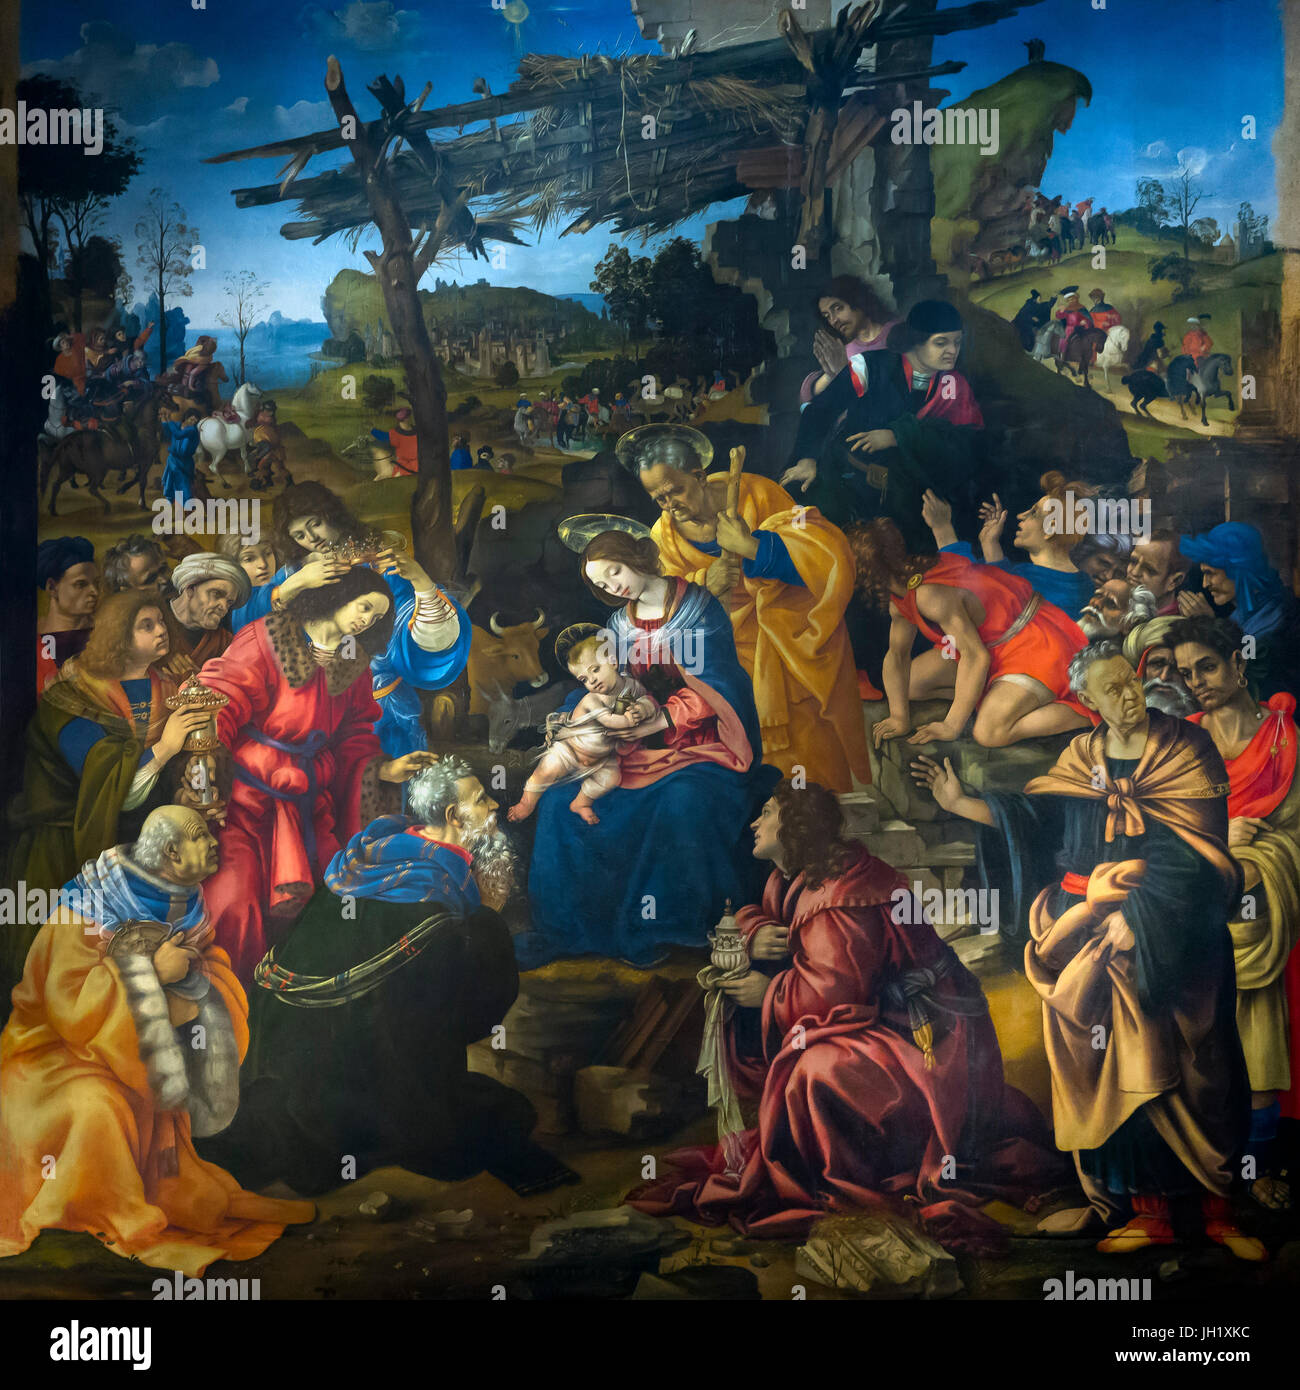 Adoration of the Magi, by Filippino Lippi, 1496, Uffizi Gallery, Florence,  Tuscany, Italy, Europe